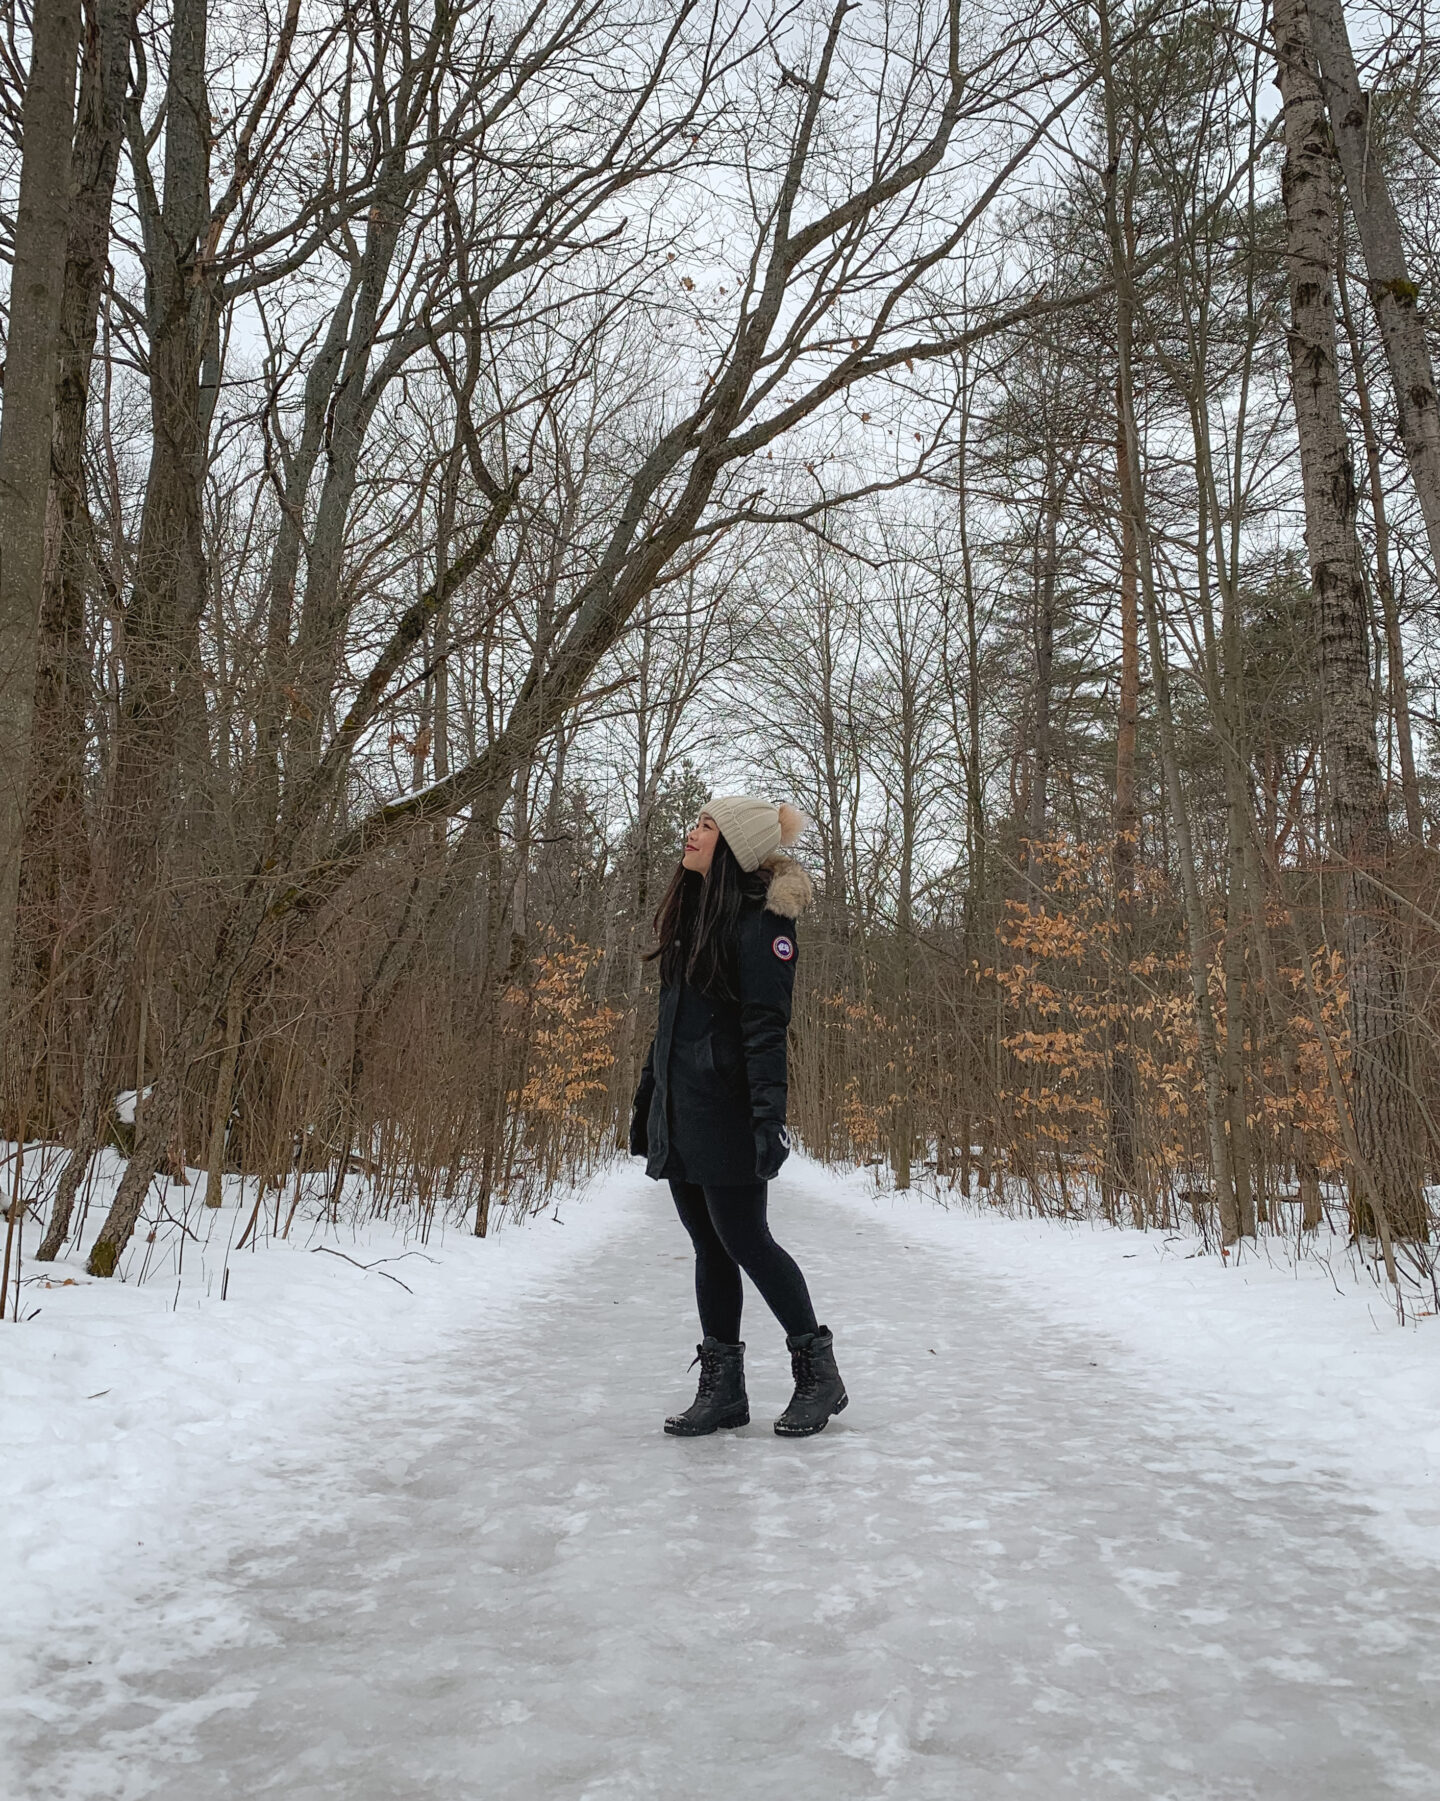 Winter hiking in Long Sault Conservation Area, Bowmanville, Ontario